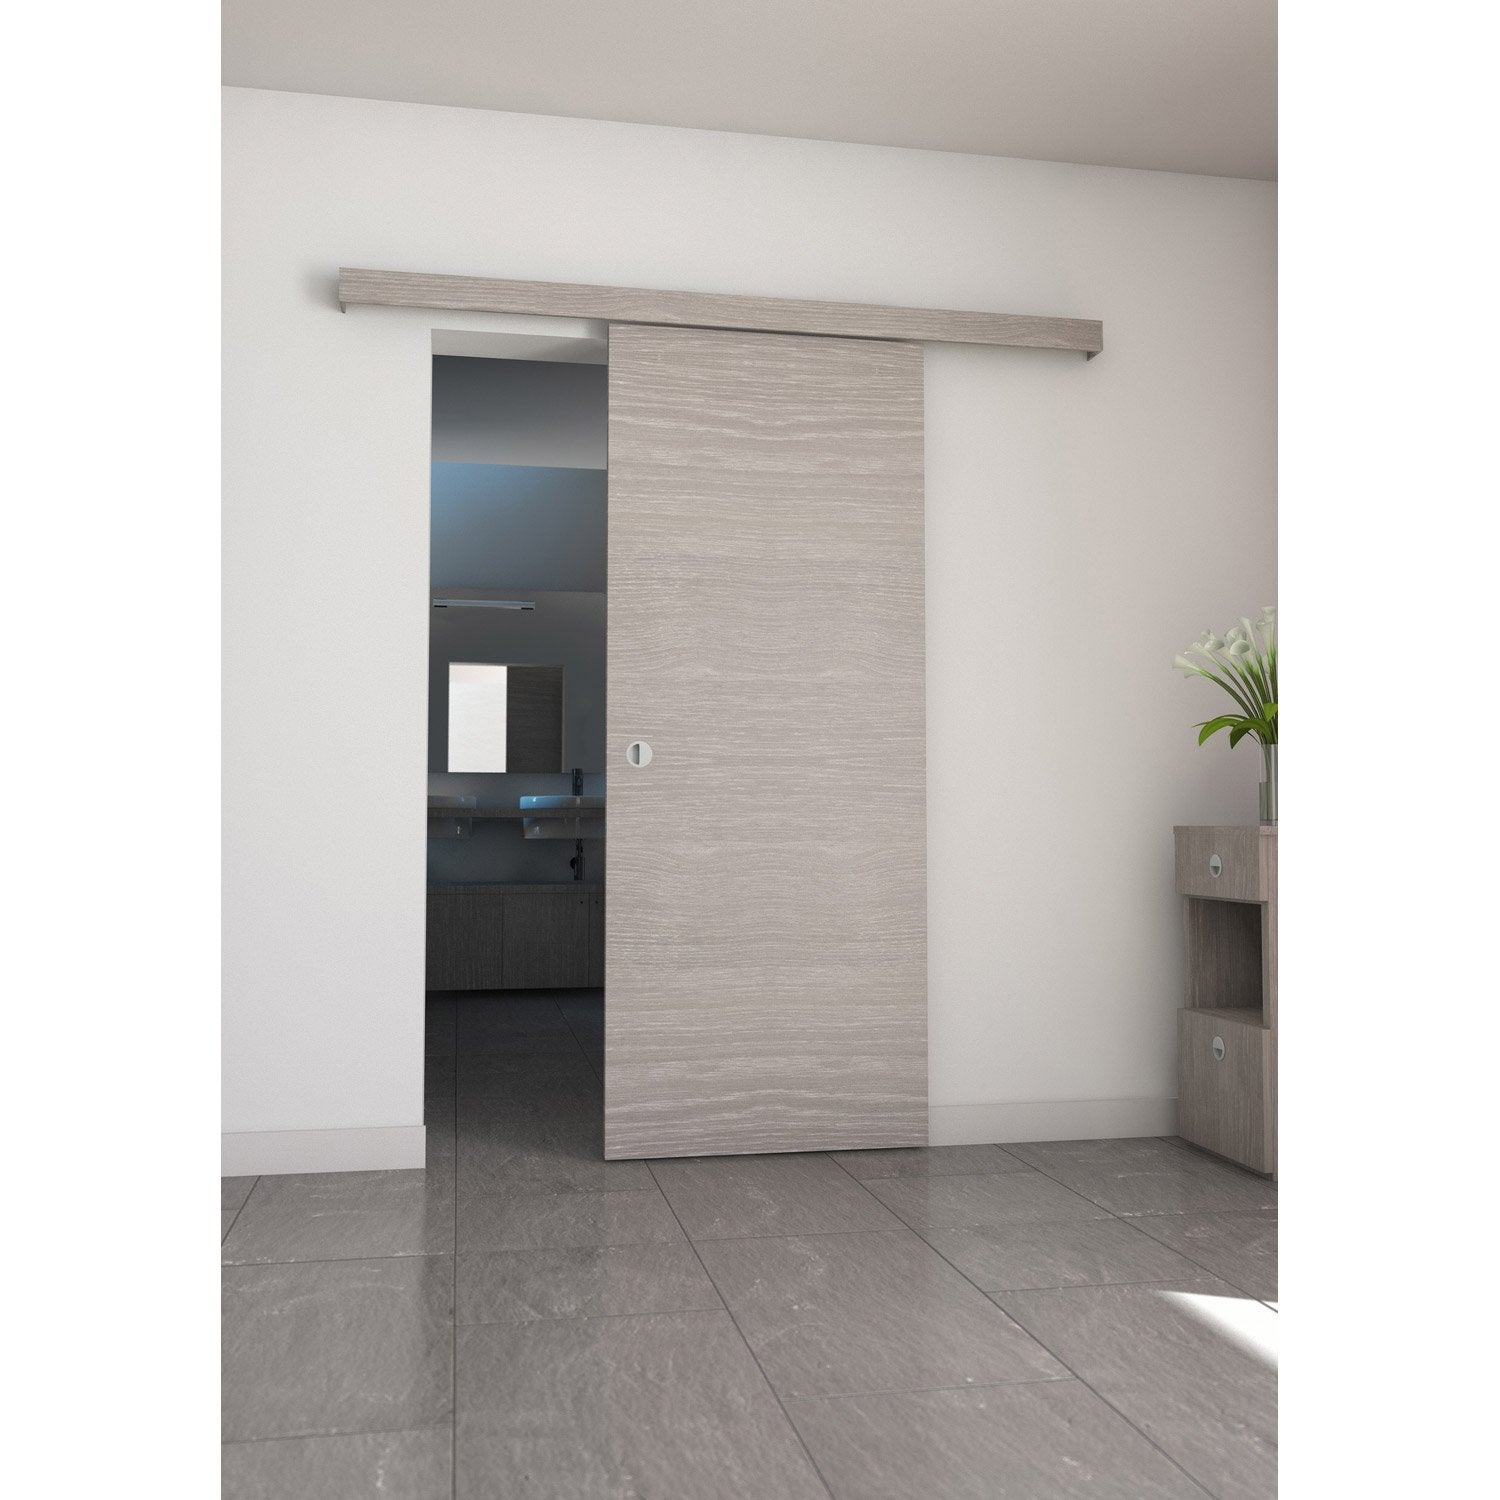 Ensemble porte coulissante coulicool mdf rev tu aluminium for Porte blanche interieur